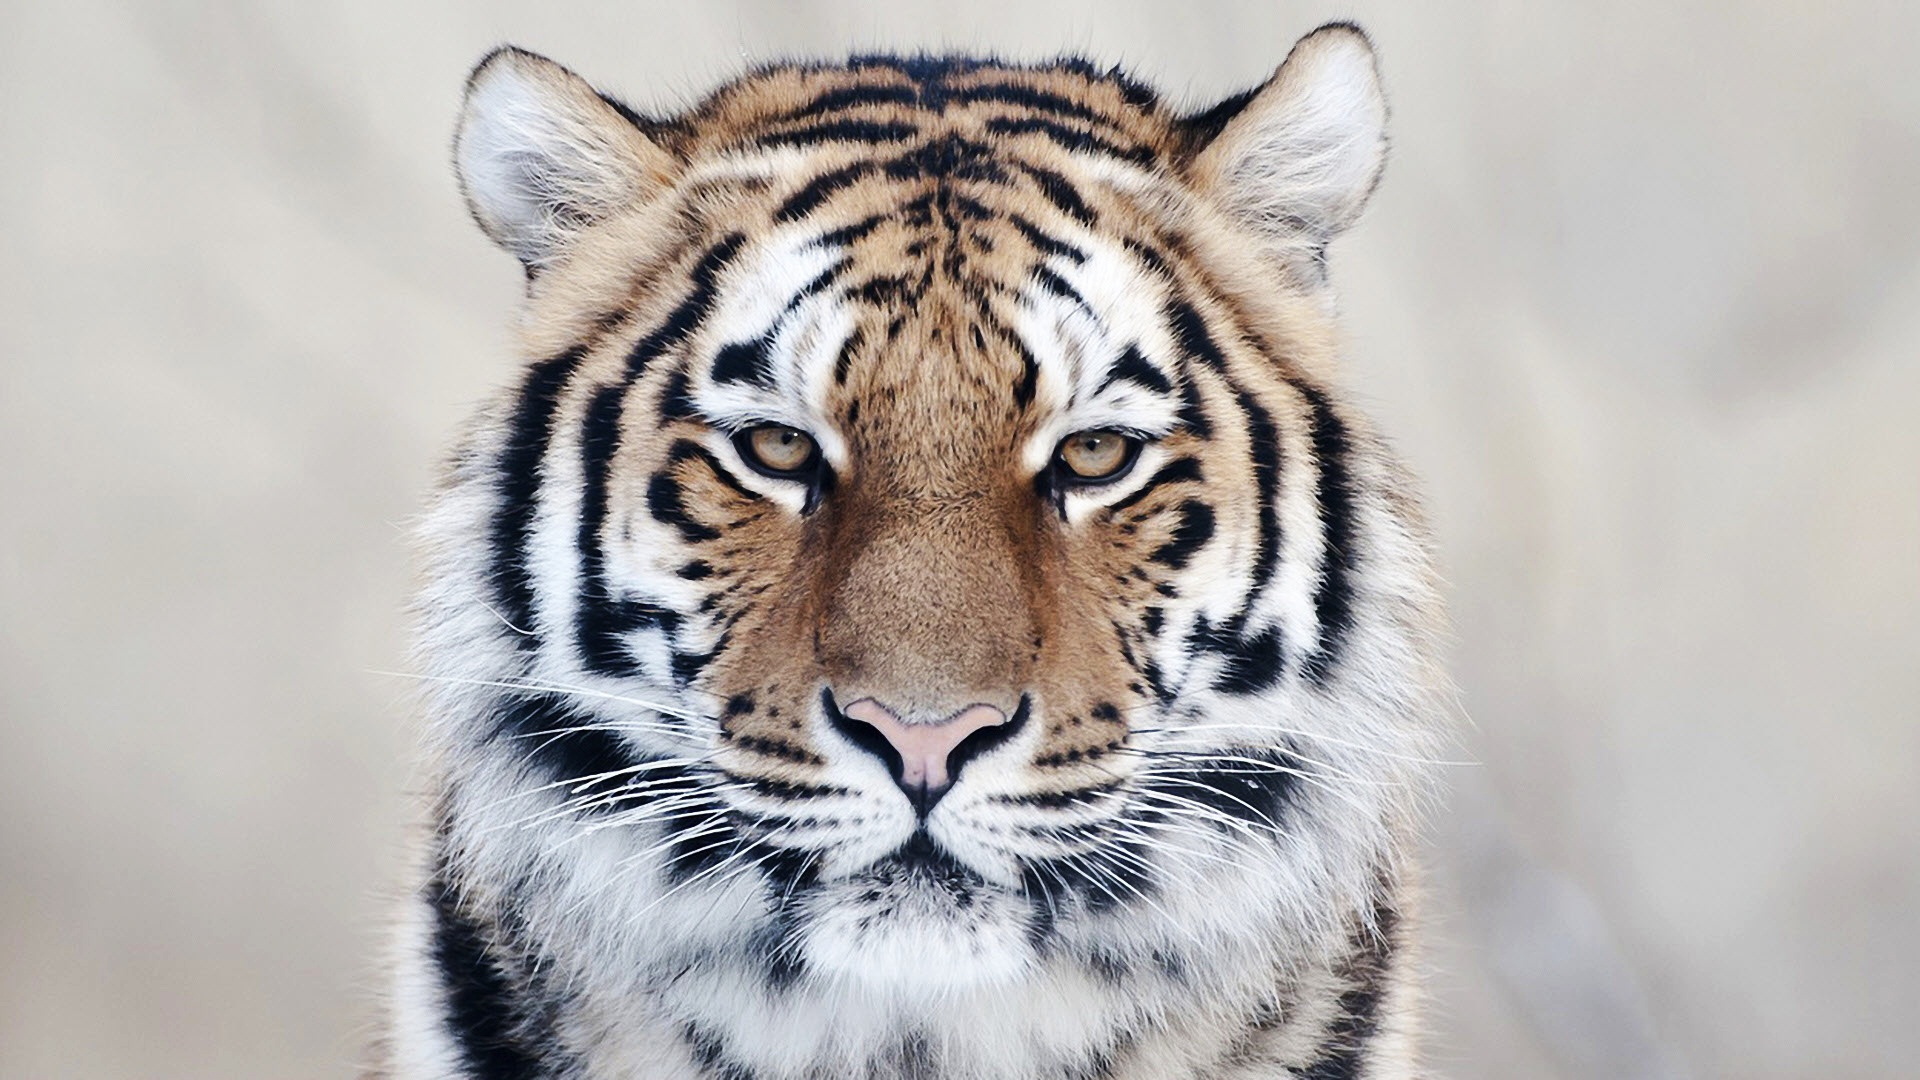 Tiger Close Up Wallpapers HD Wallpapers 1920x1080